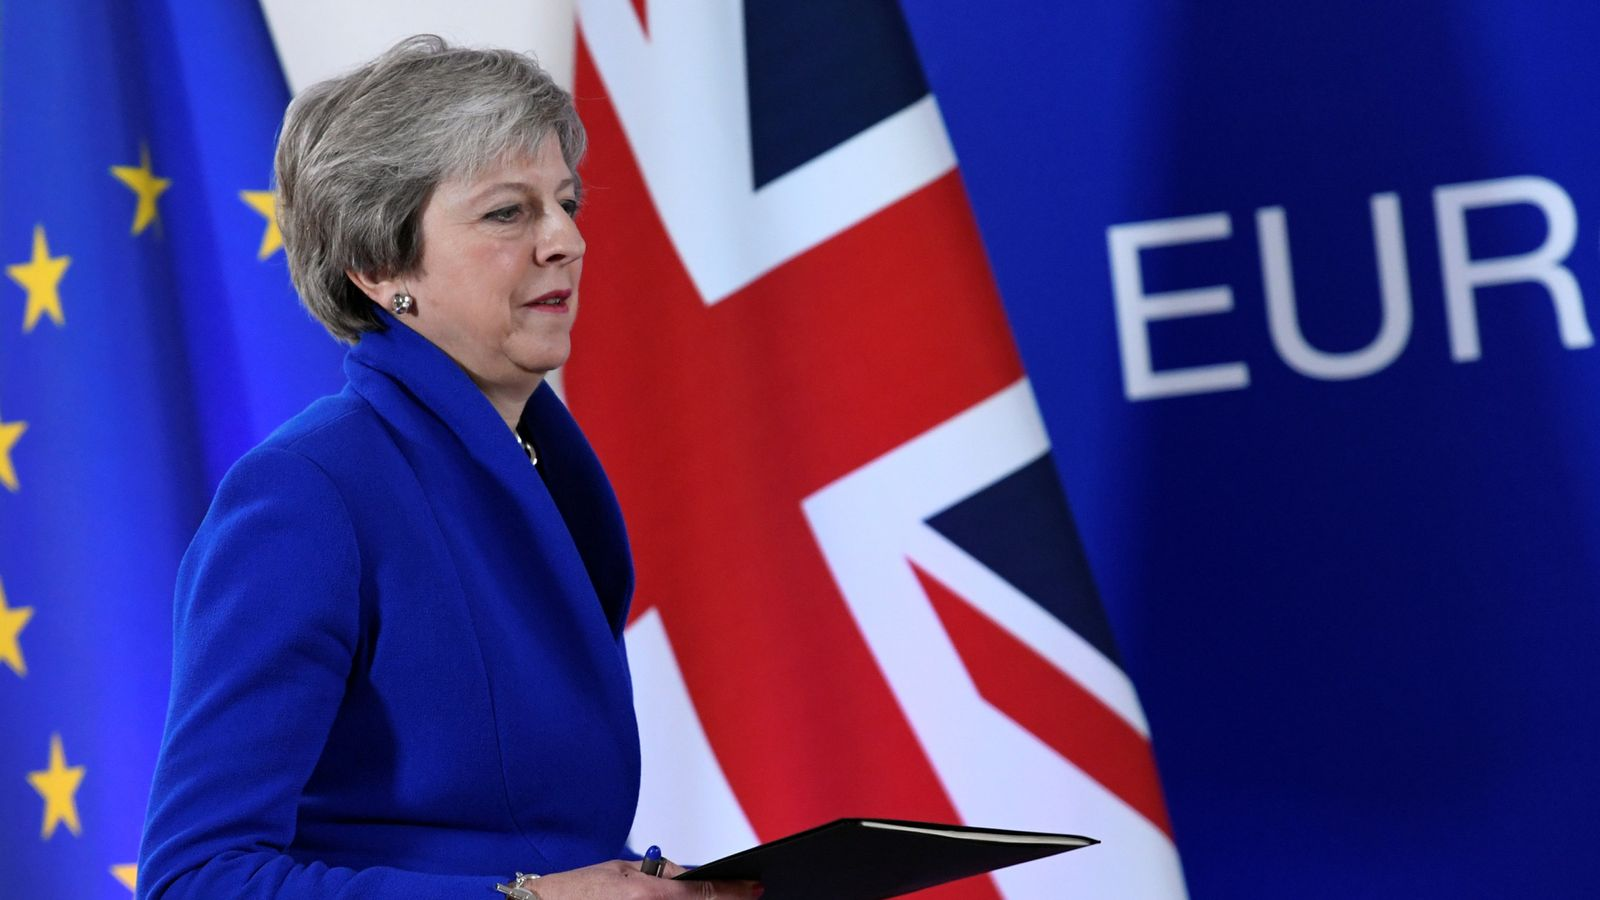 Brexit News: PM Faces 'historic Constitutional Row' Over Brexit Legal